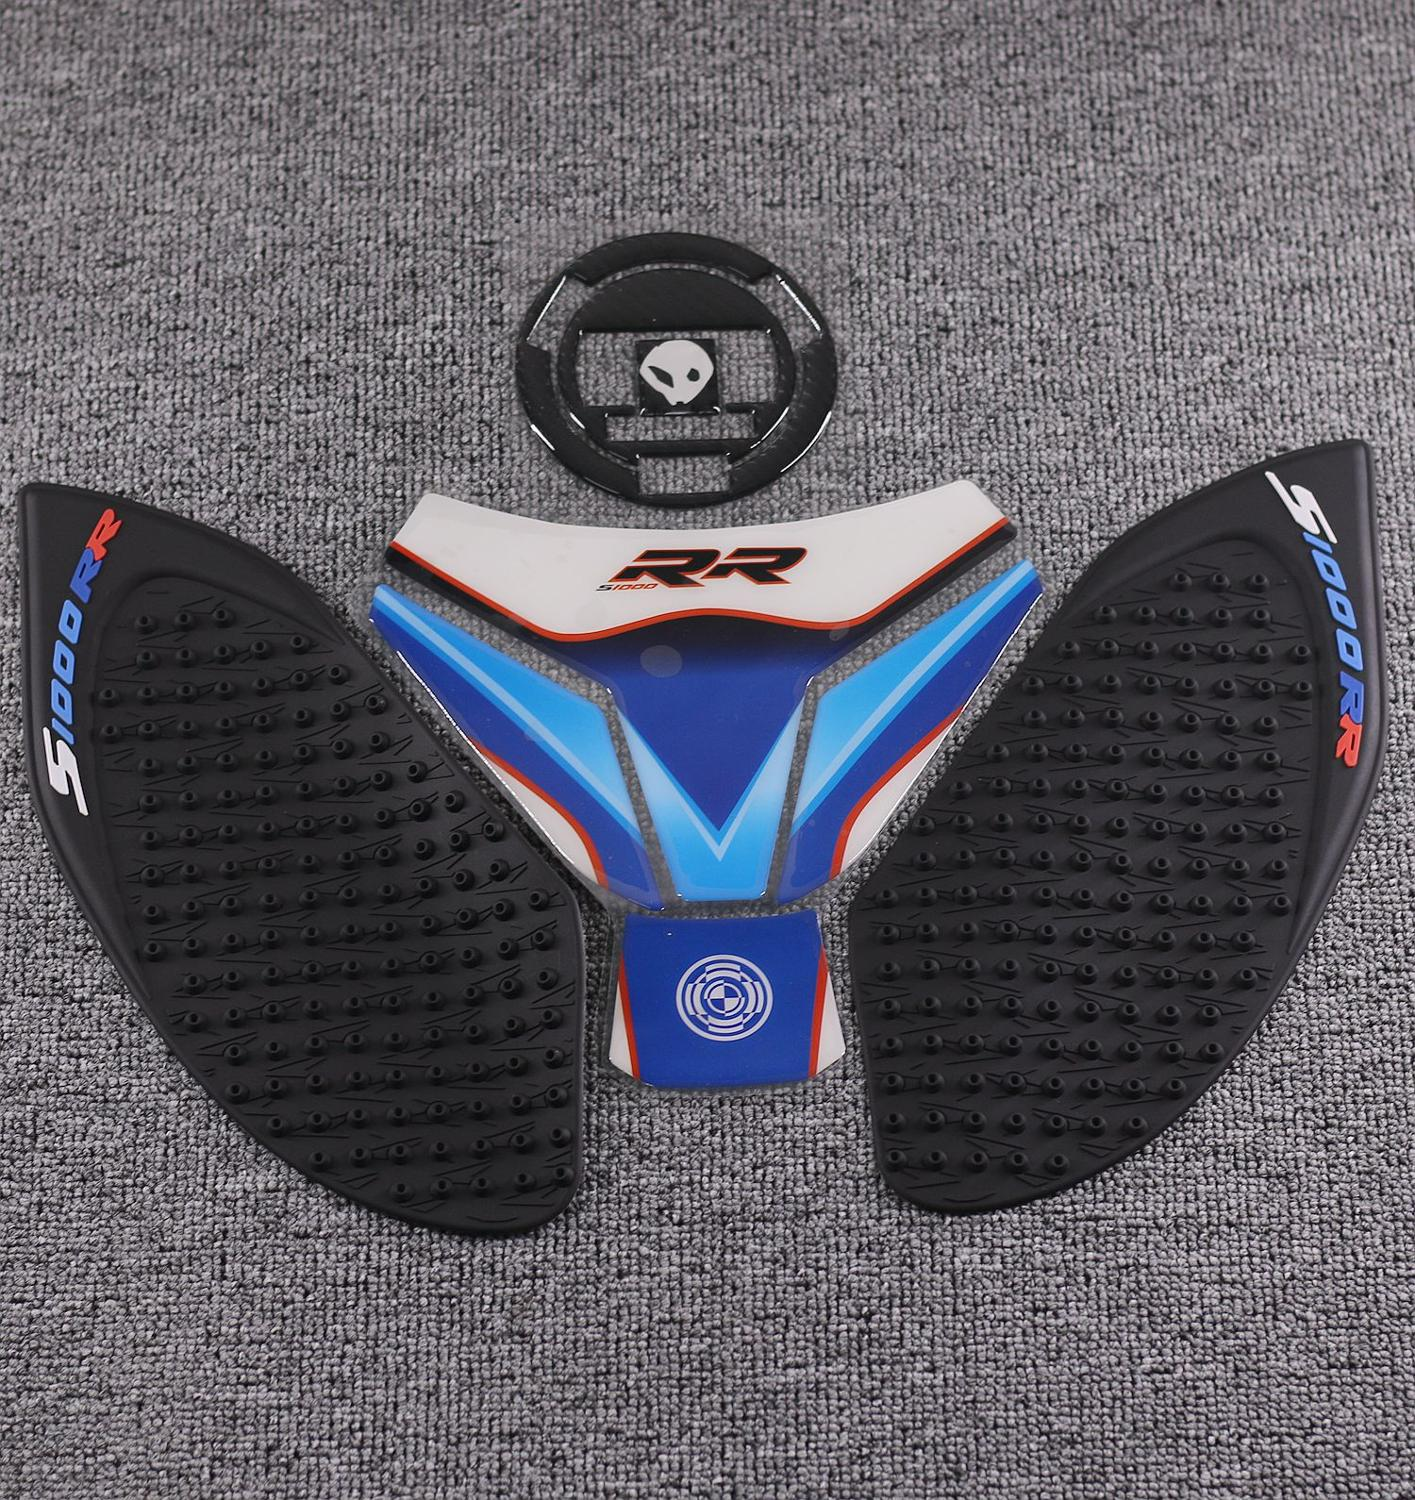 For BMW S1000RR S1000 RR HP4 Tank Cover Protector Motorcycle Carbon Fiber Fuel Tank Cap Sticker Pad Anti Slip Traction Decal